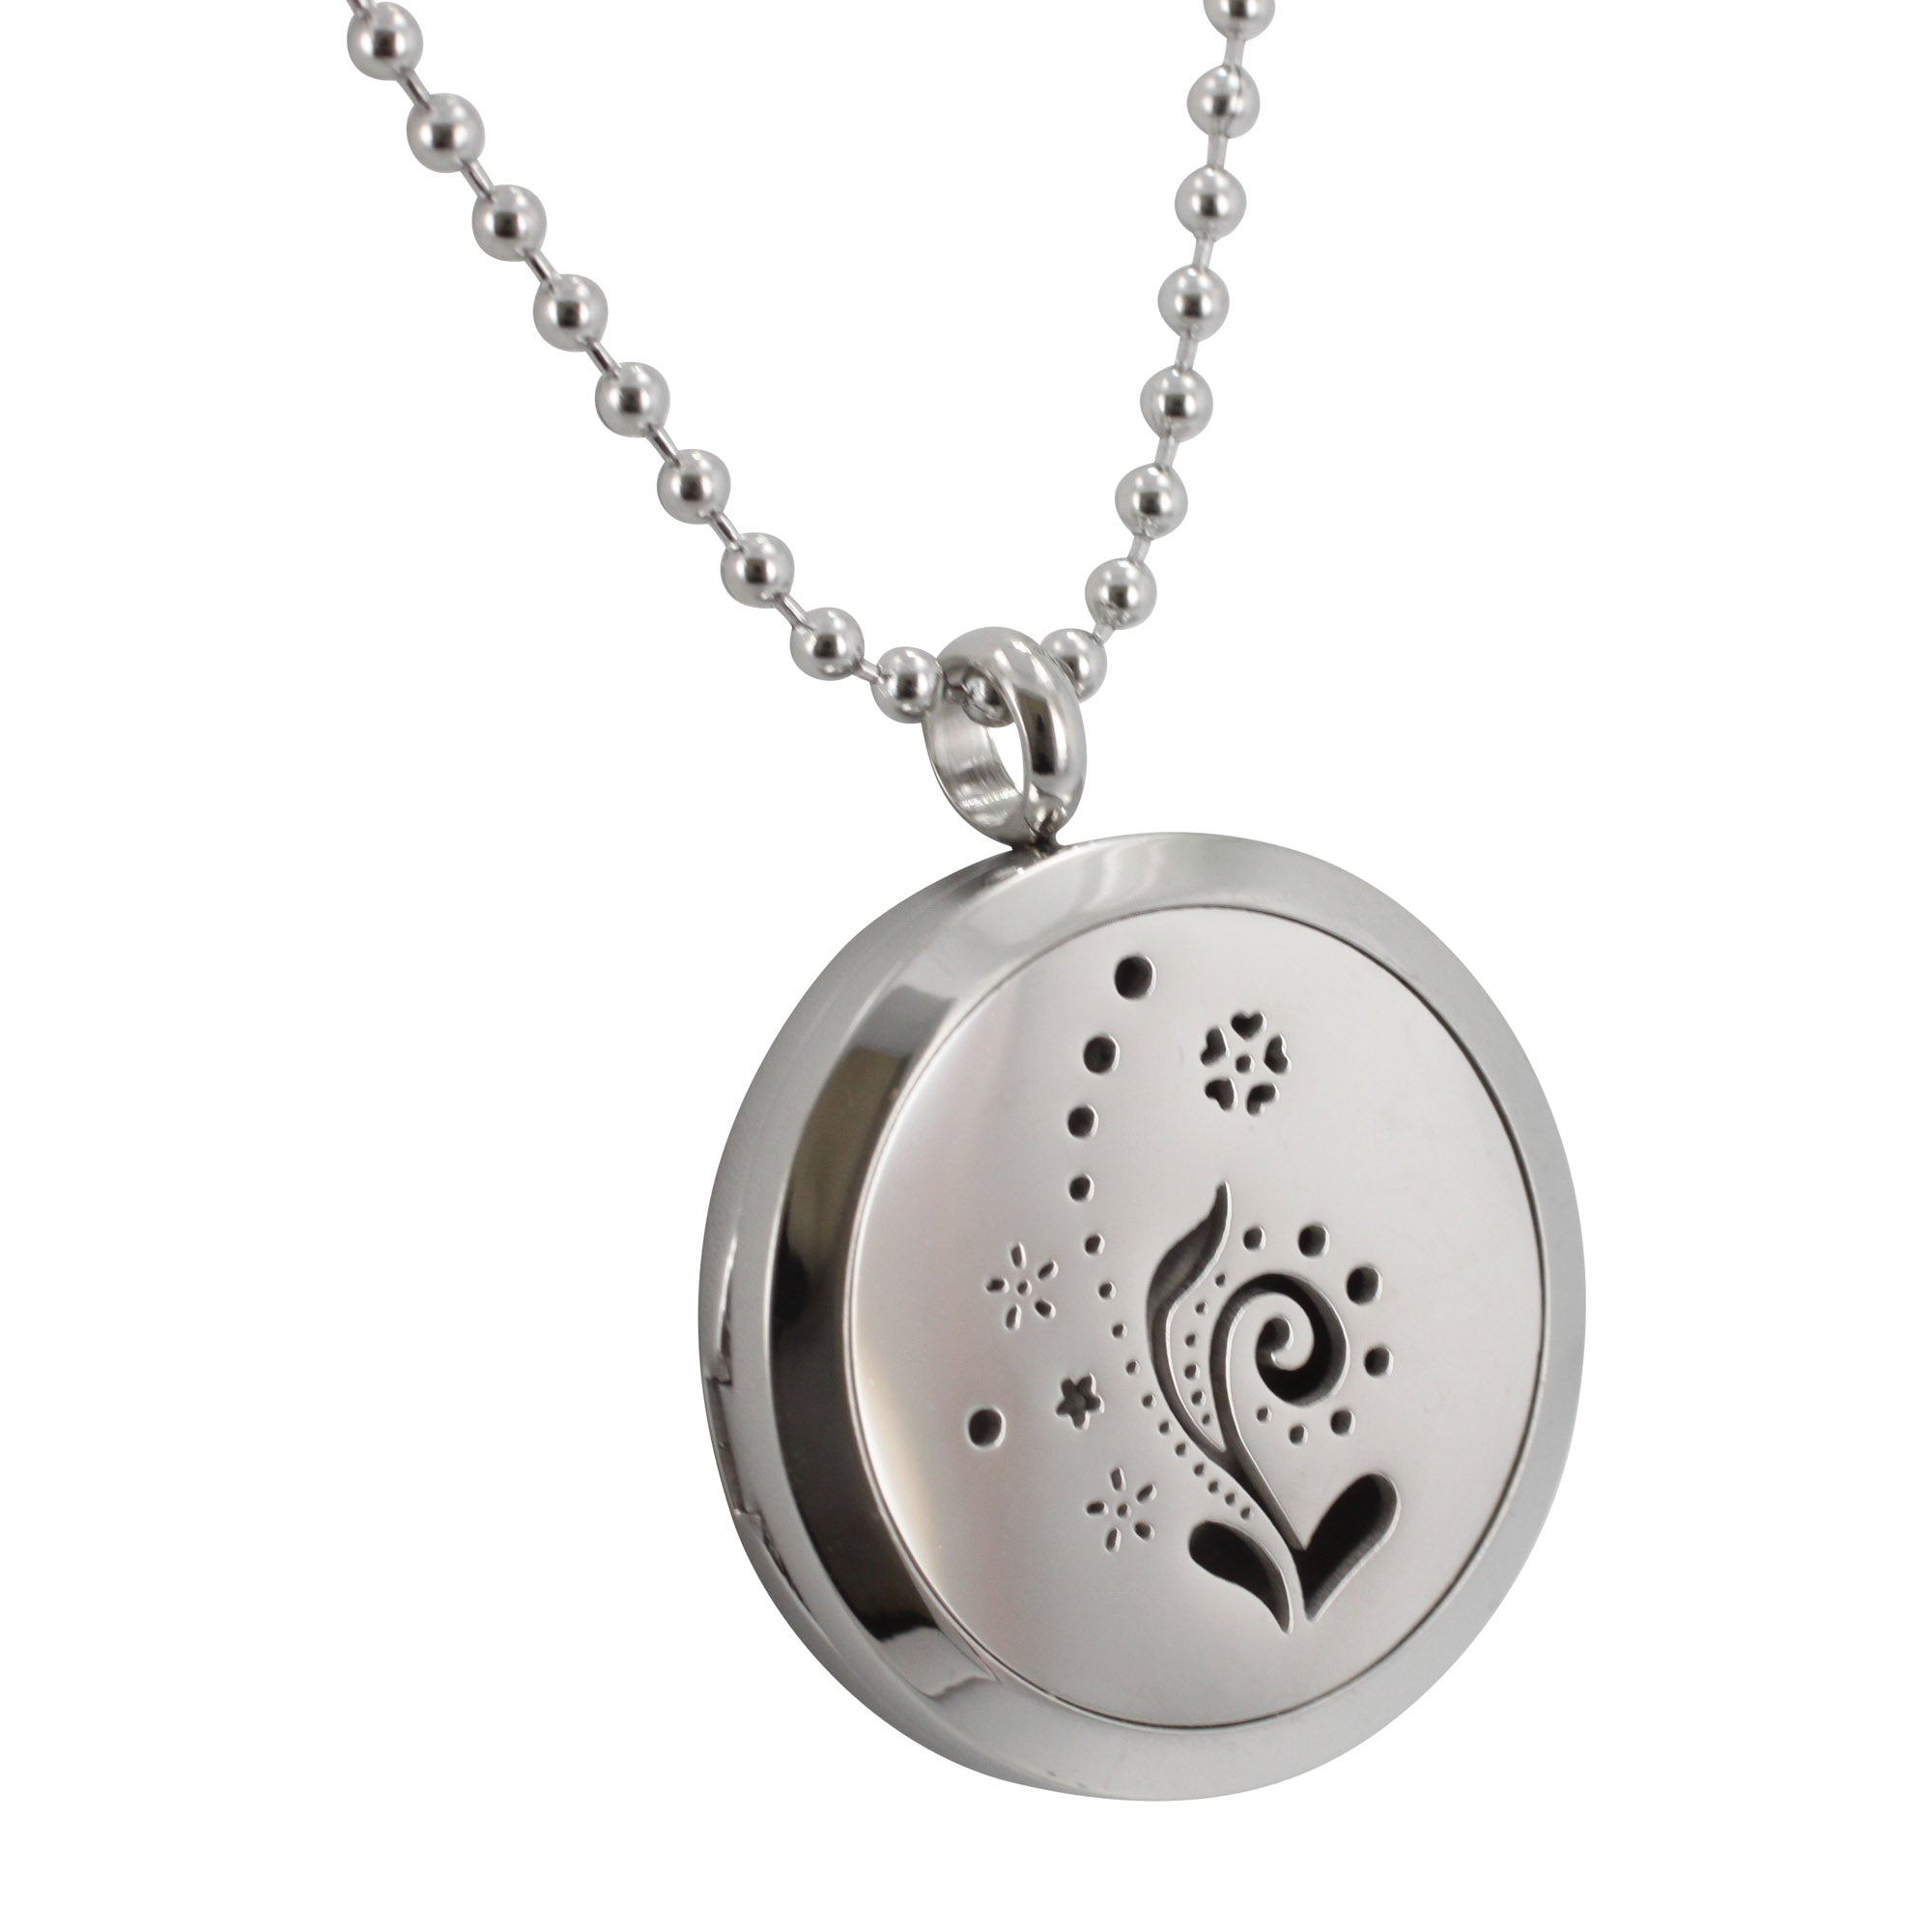 walmart com pendant charm with locket ip necklace engraved photo round chain shape filigree